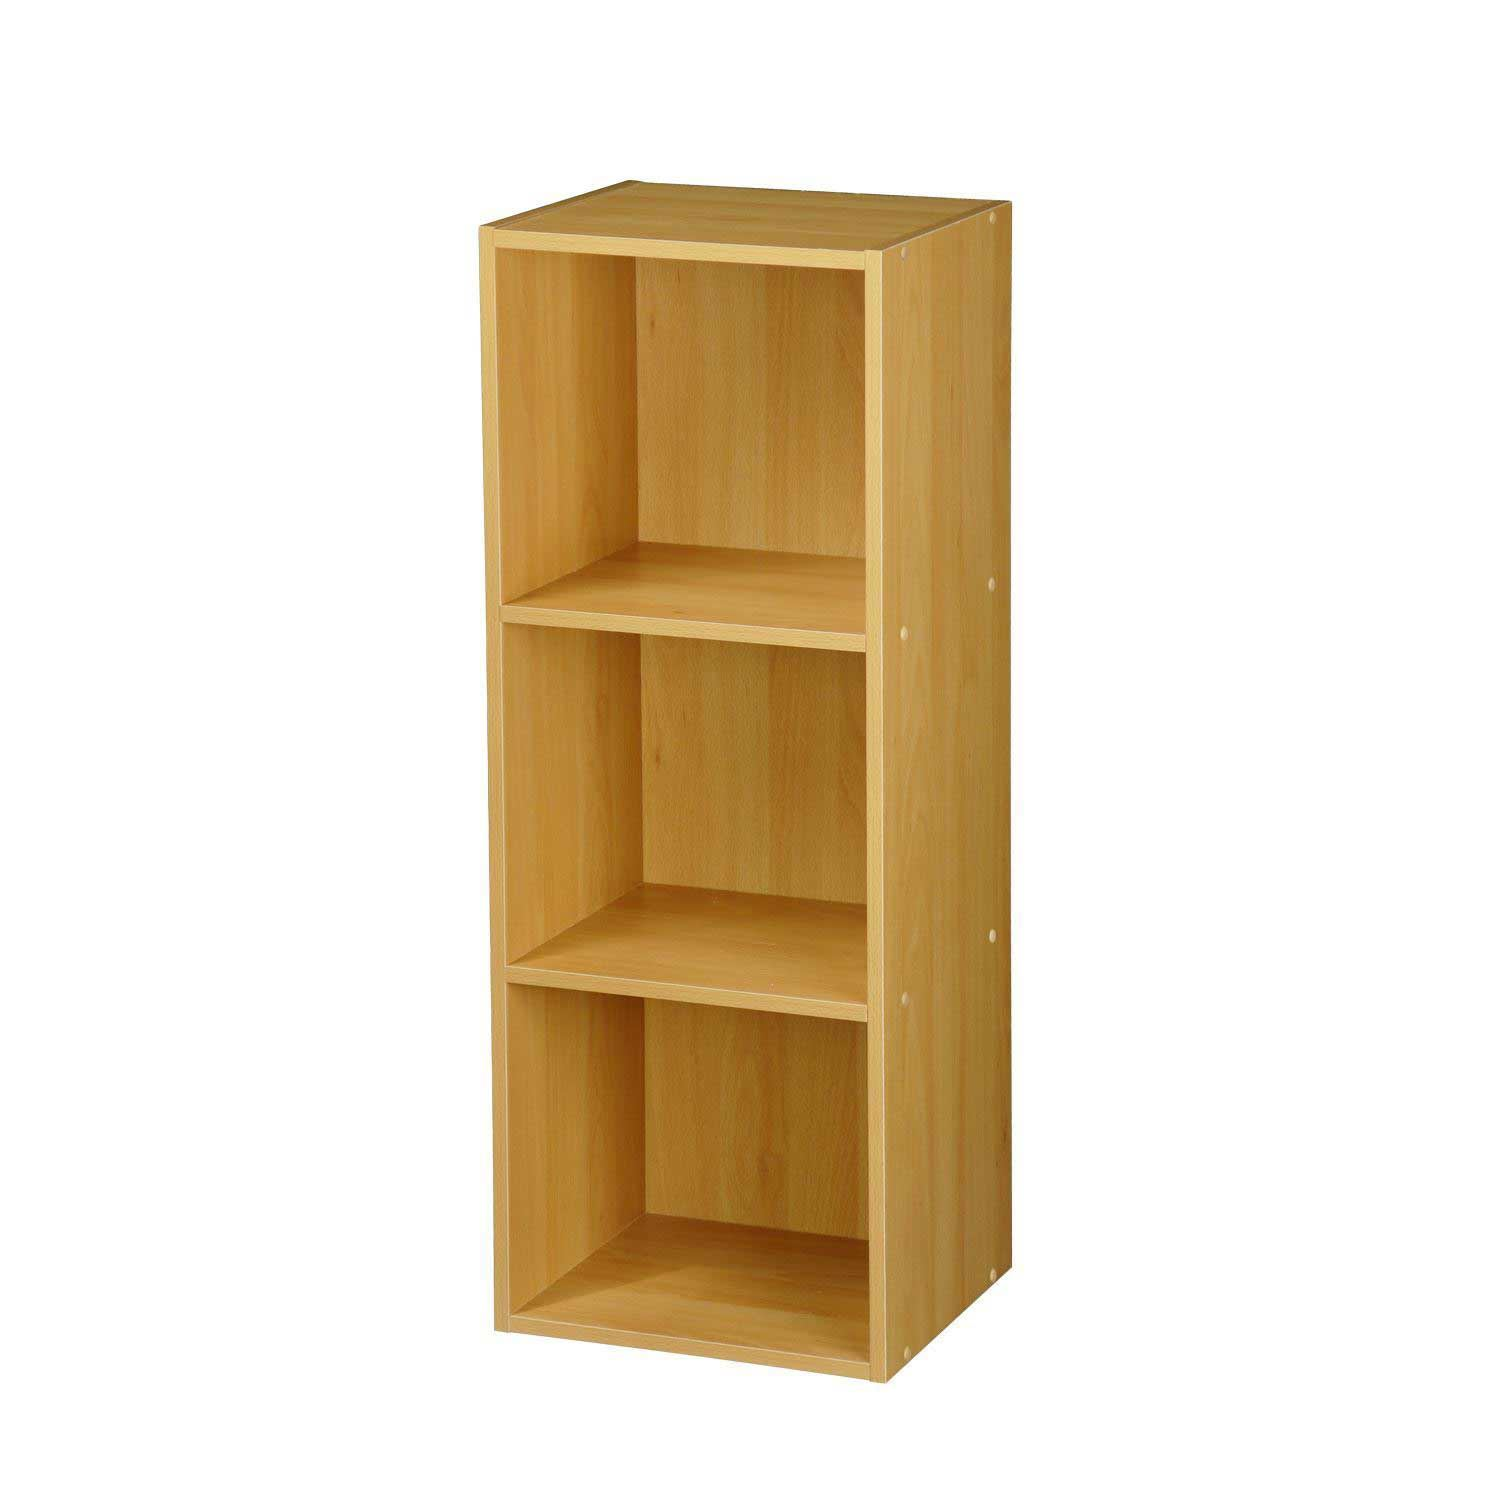 Wooden-Storage-Unit-Cube-2-3-4-Tier-Strong-Bookcase-Shelving-Home-Office-Display thumbnail 8